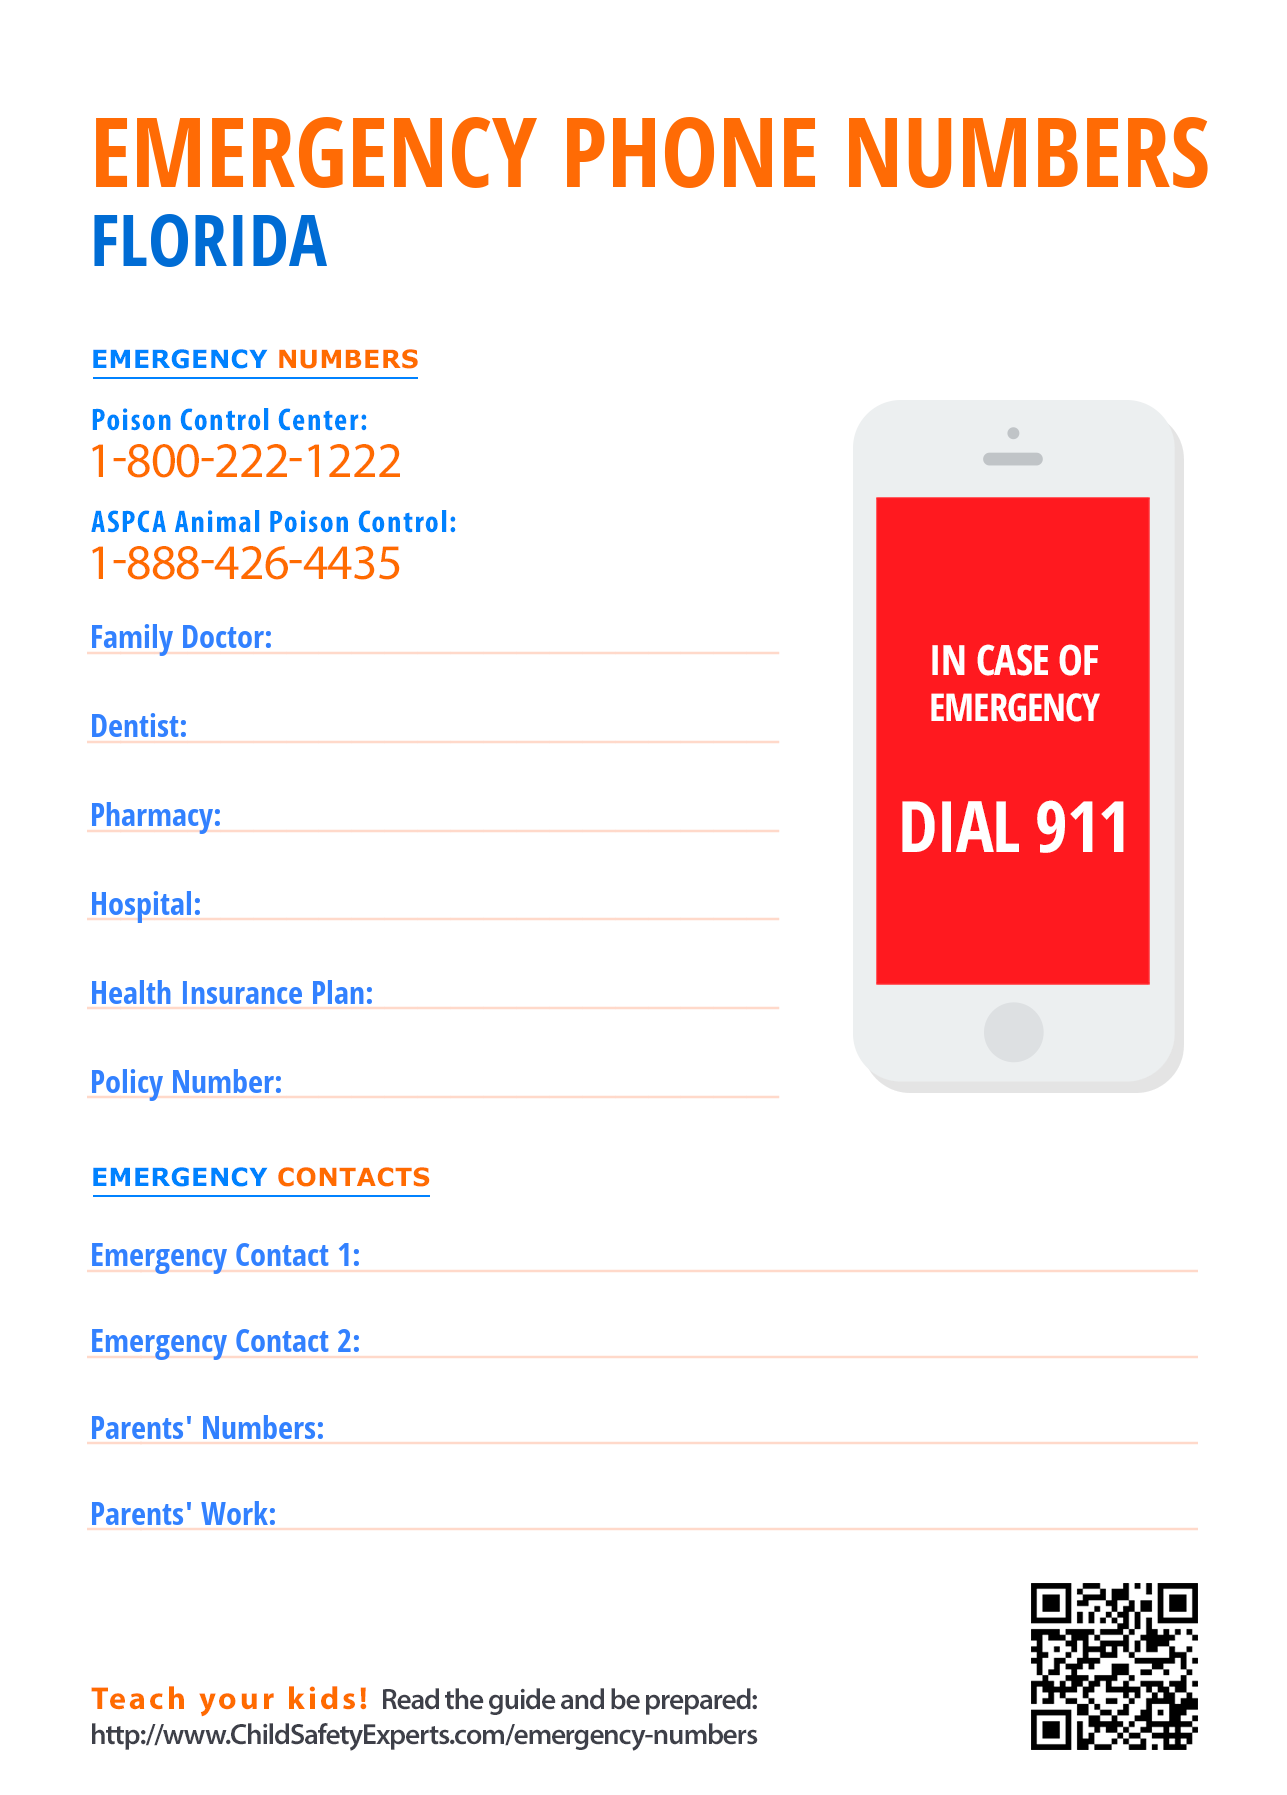 Important emergency phone numbers in Florida